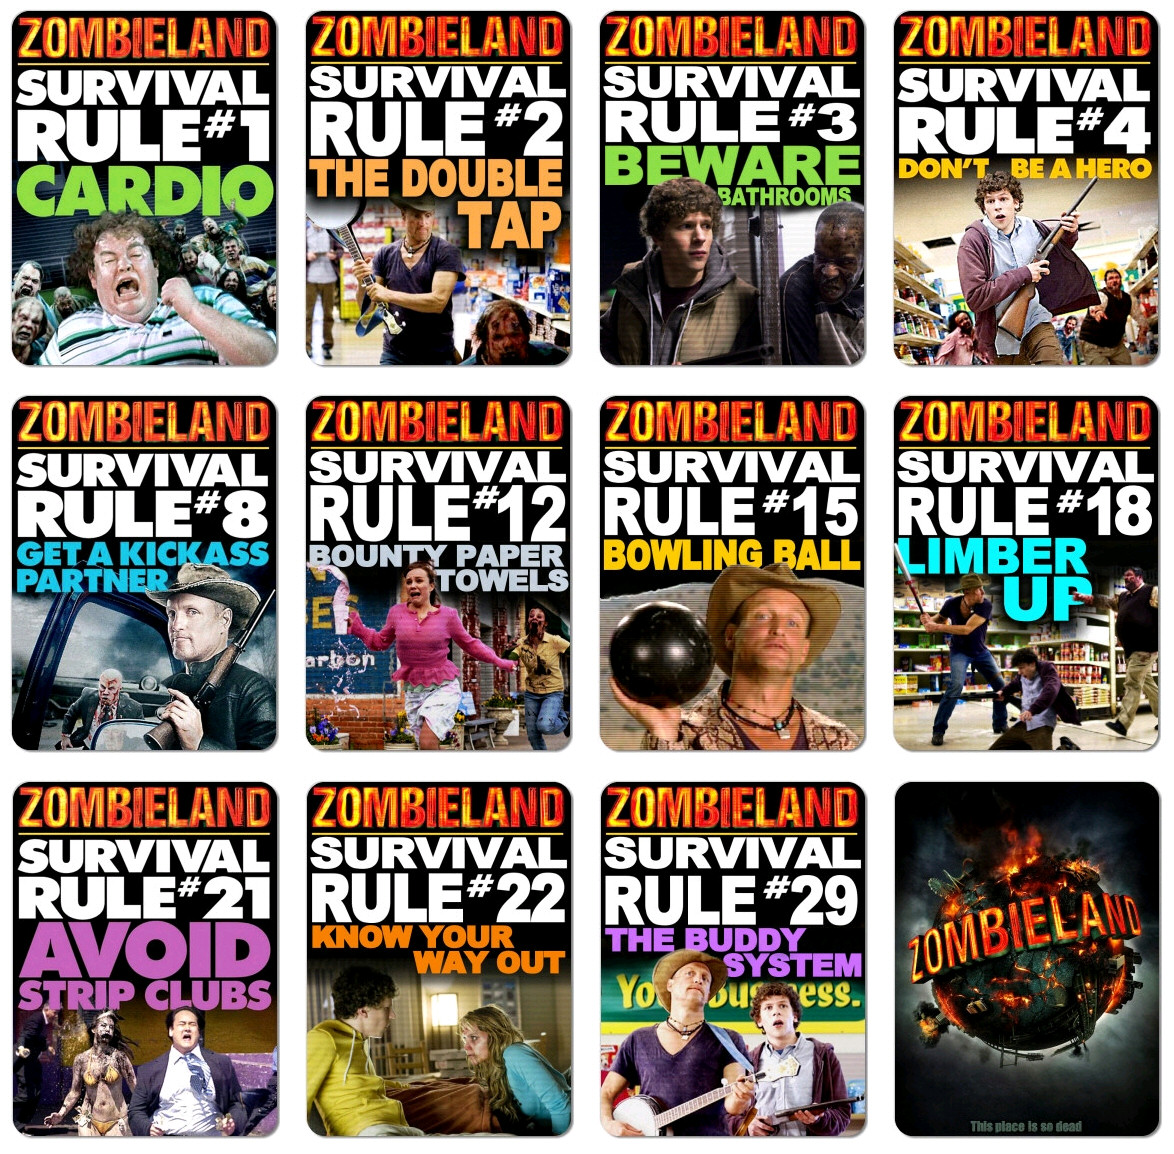 zombieland survival rules